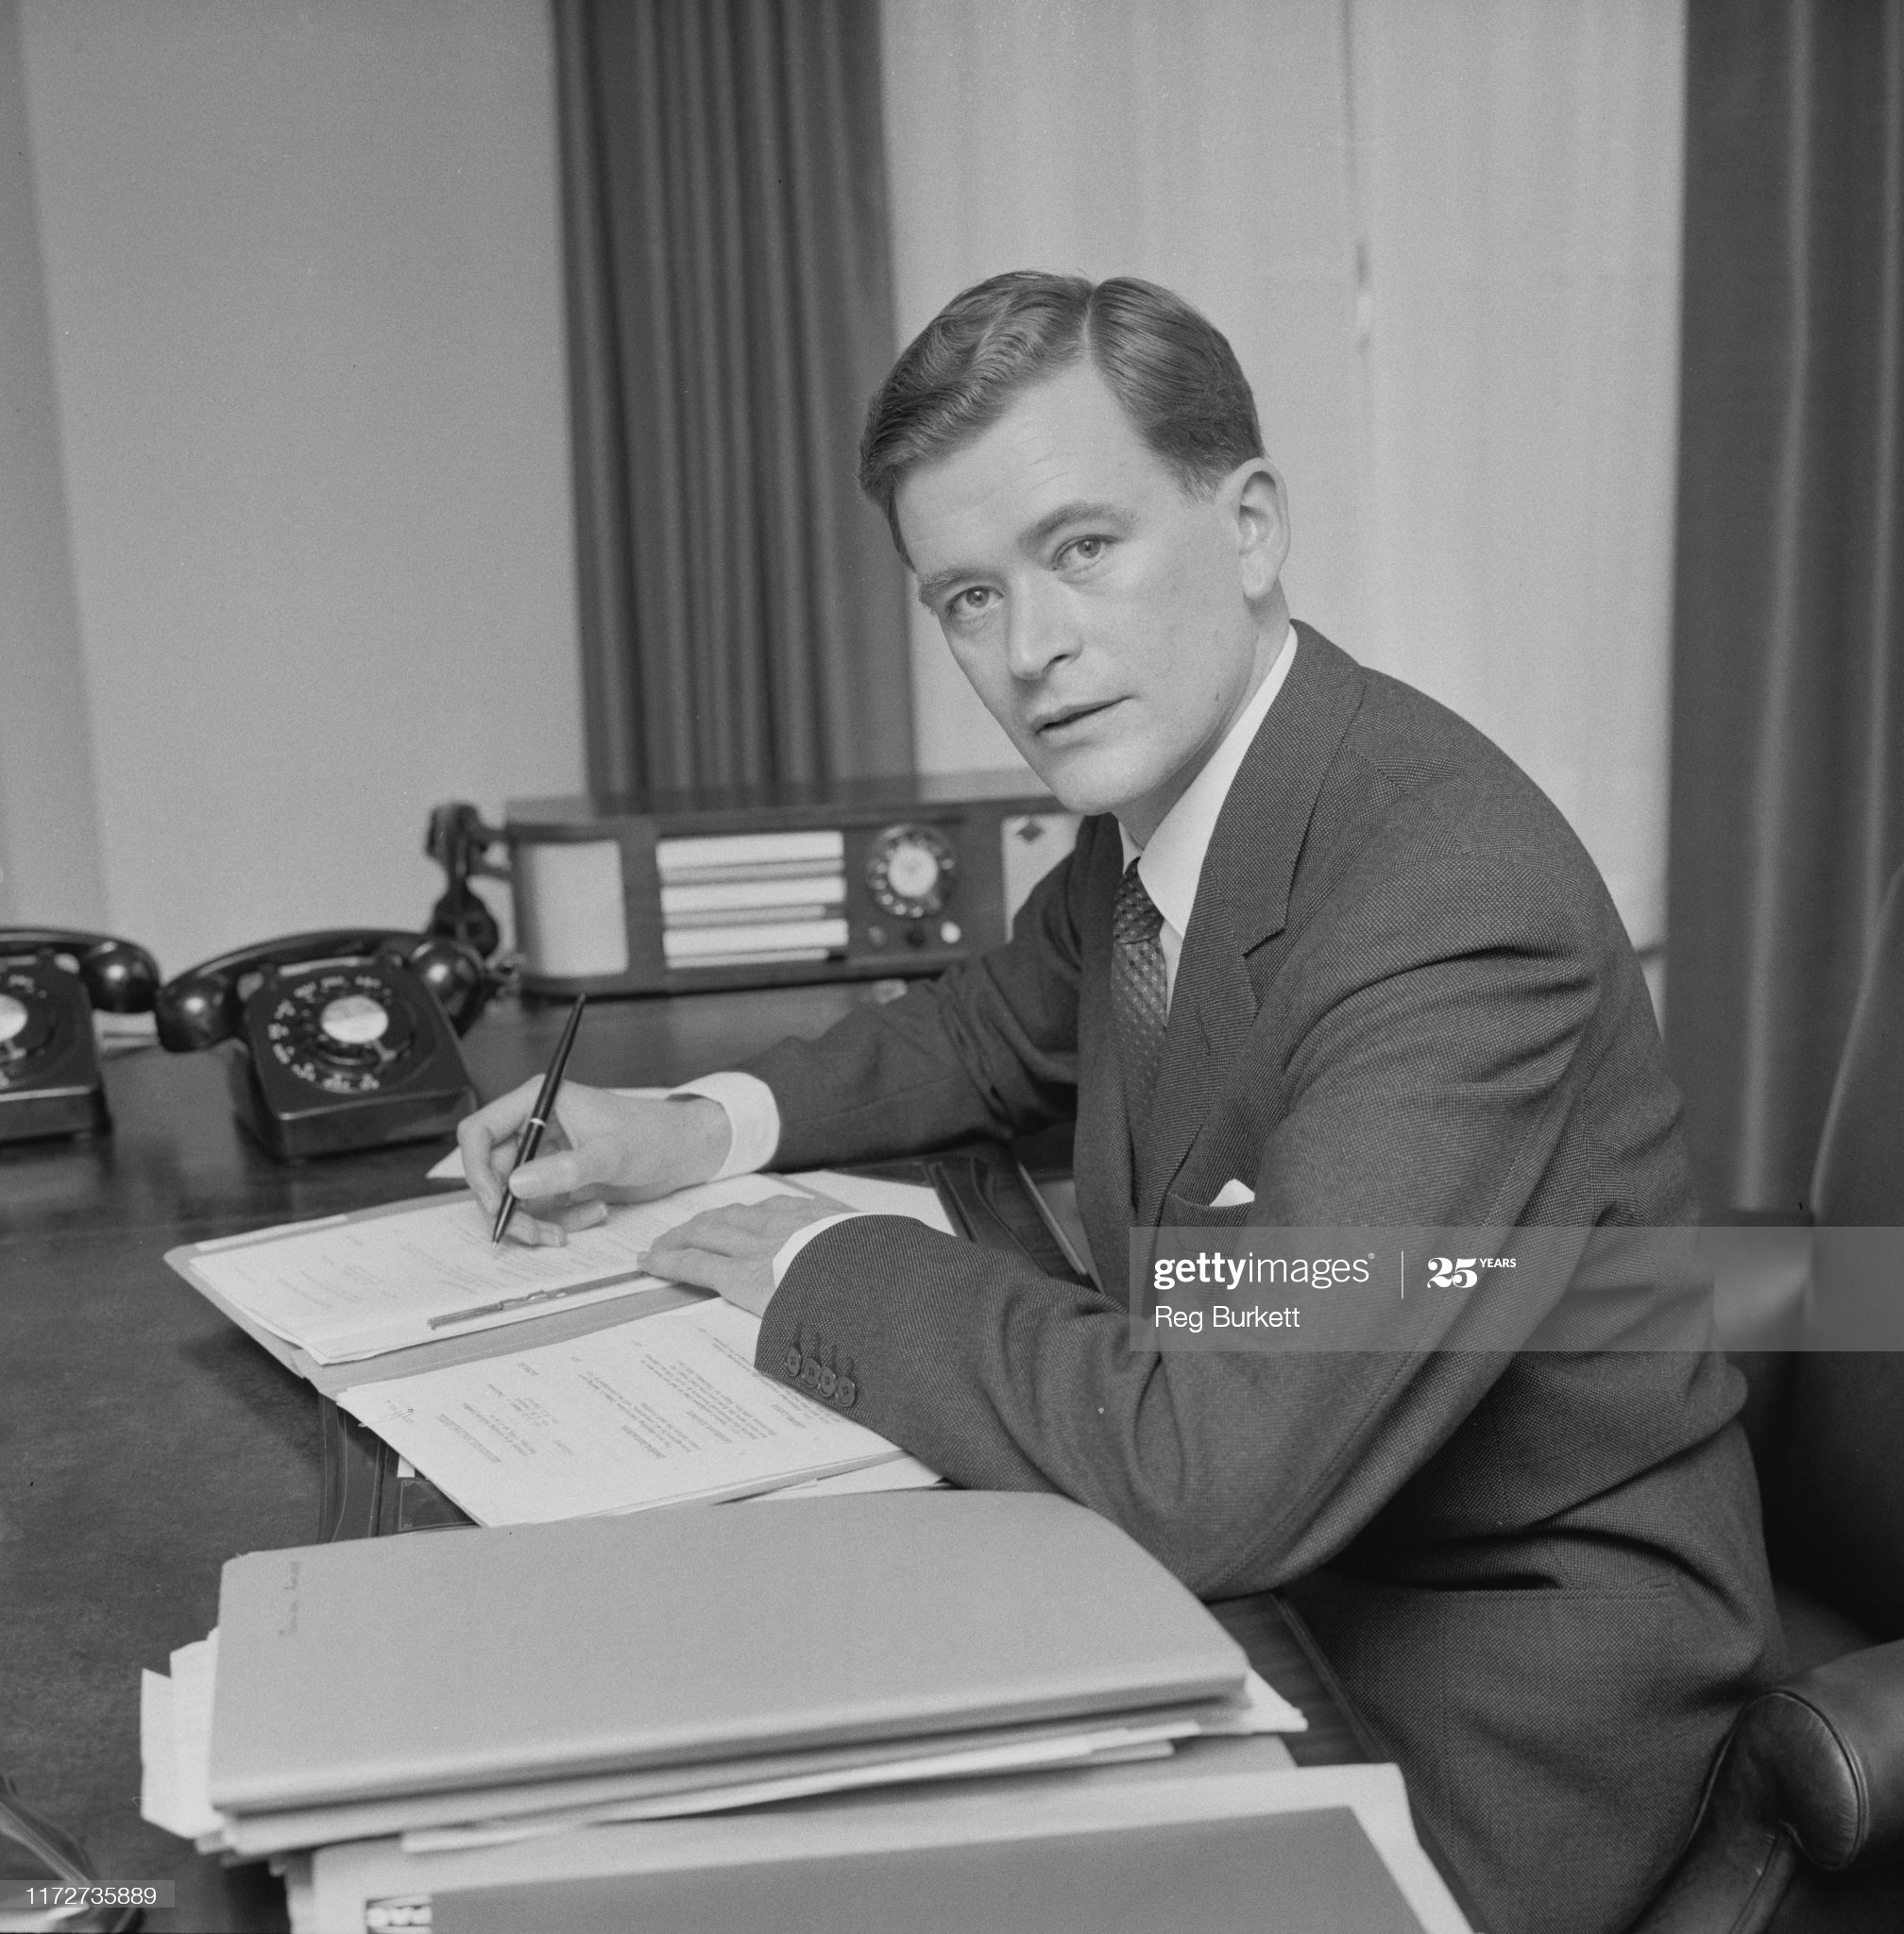 British accountant, investor and business writer Jim Slater (1929 - 2015) signing documents at a desk, UK, 11th May 1965. (Photo by Reg Burkett/Daily Express/Hulton Archive/Getty Images)